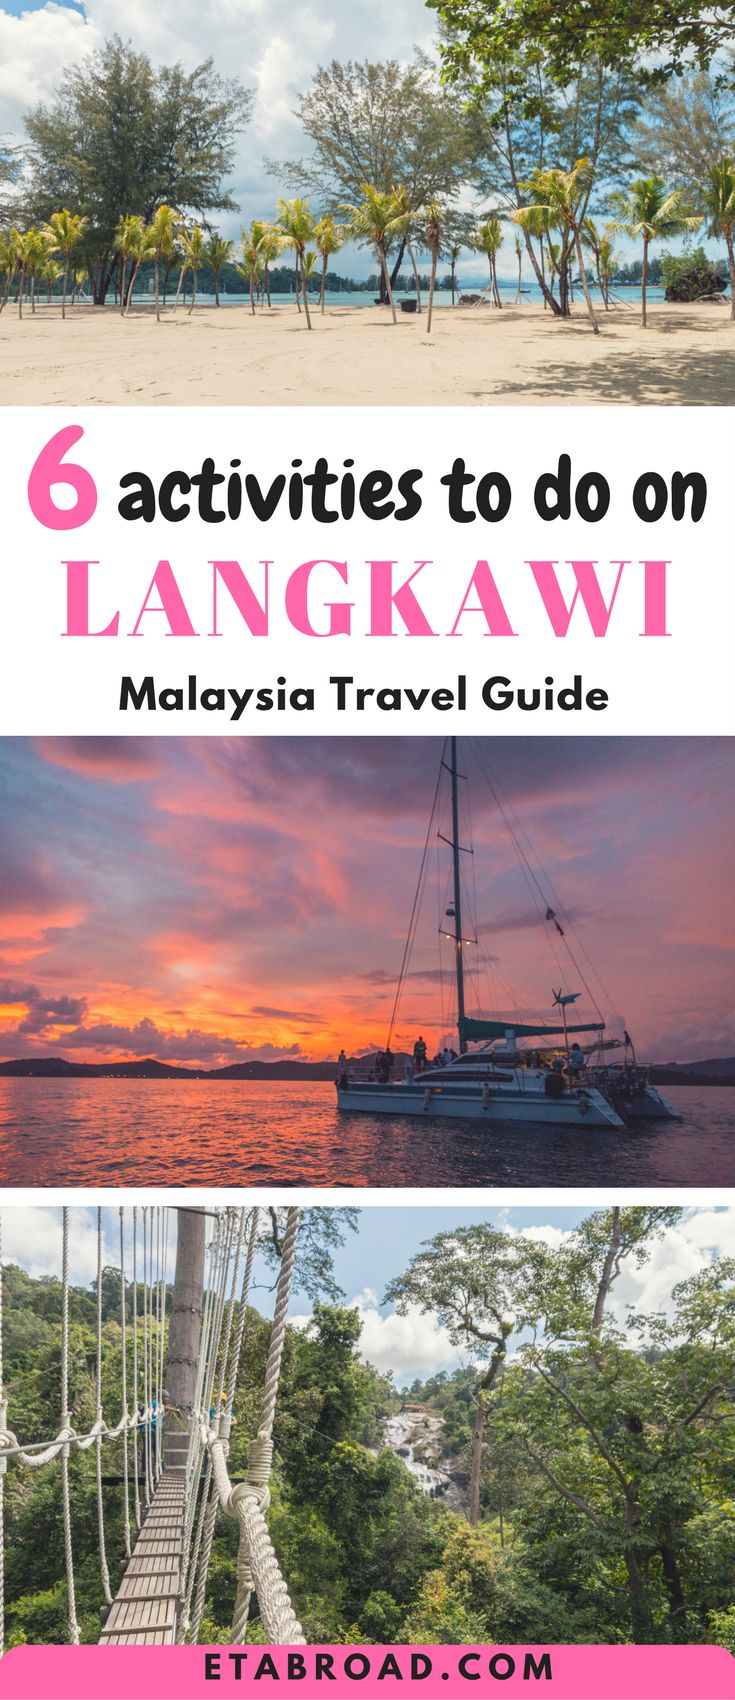 Langkawi, beautiful island in Malaysia can offer a lot of things to do. You could spend the weeks to discover everything. Here is a list of 5 Best activities you can do on Langkawi. #Malaysia #Lagkawi #Travel #LangkawiActivities #bucketlist #wanderlust